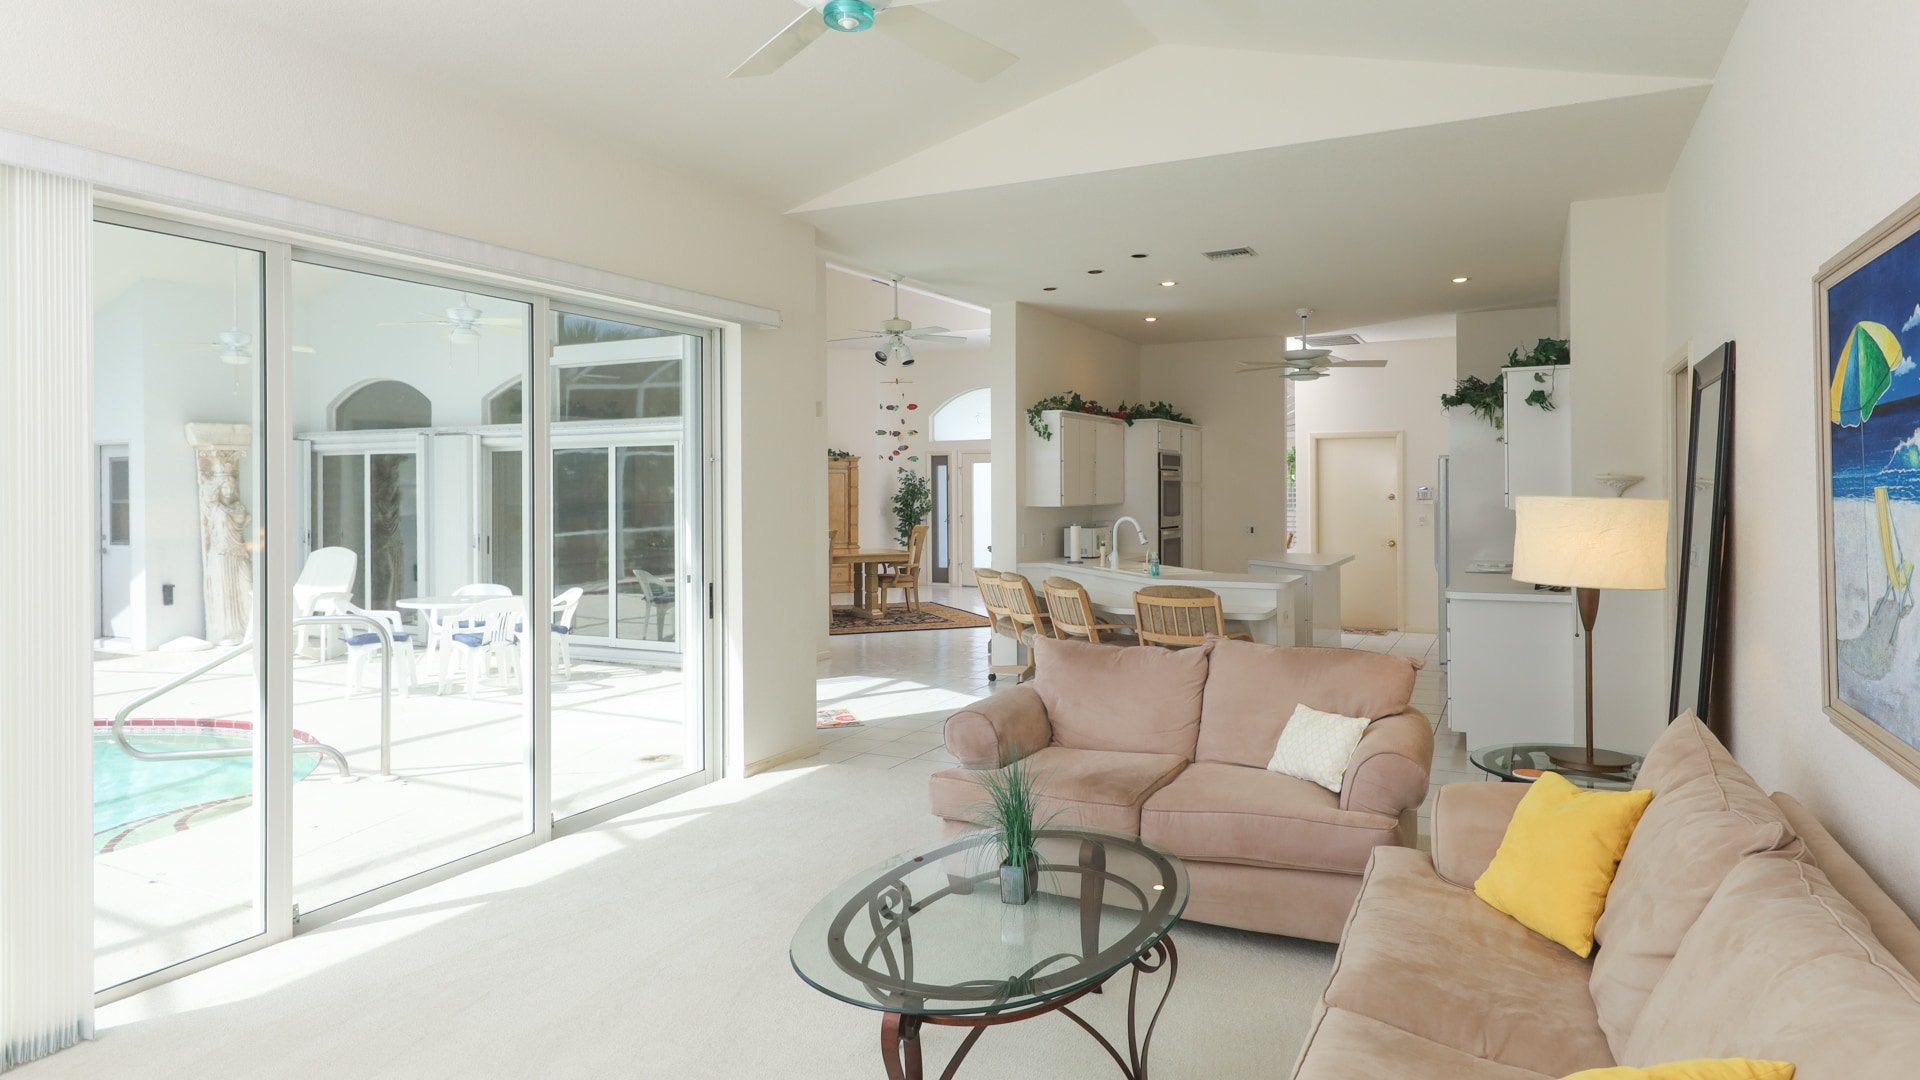 3836 Paola Dr-212755